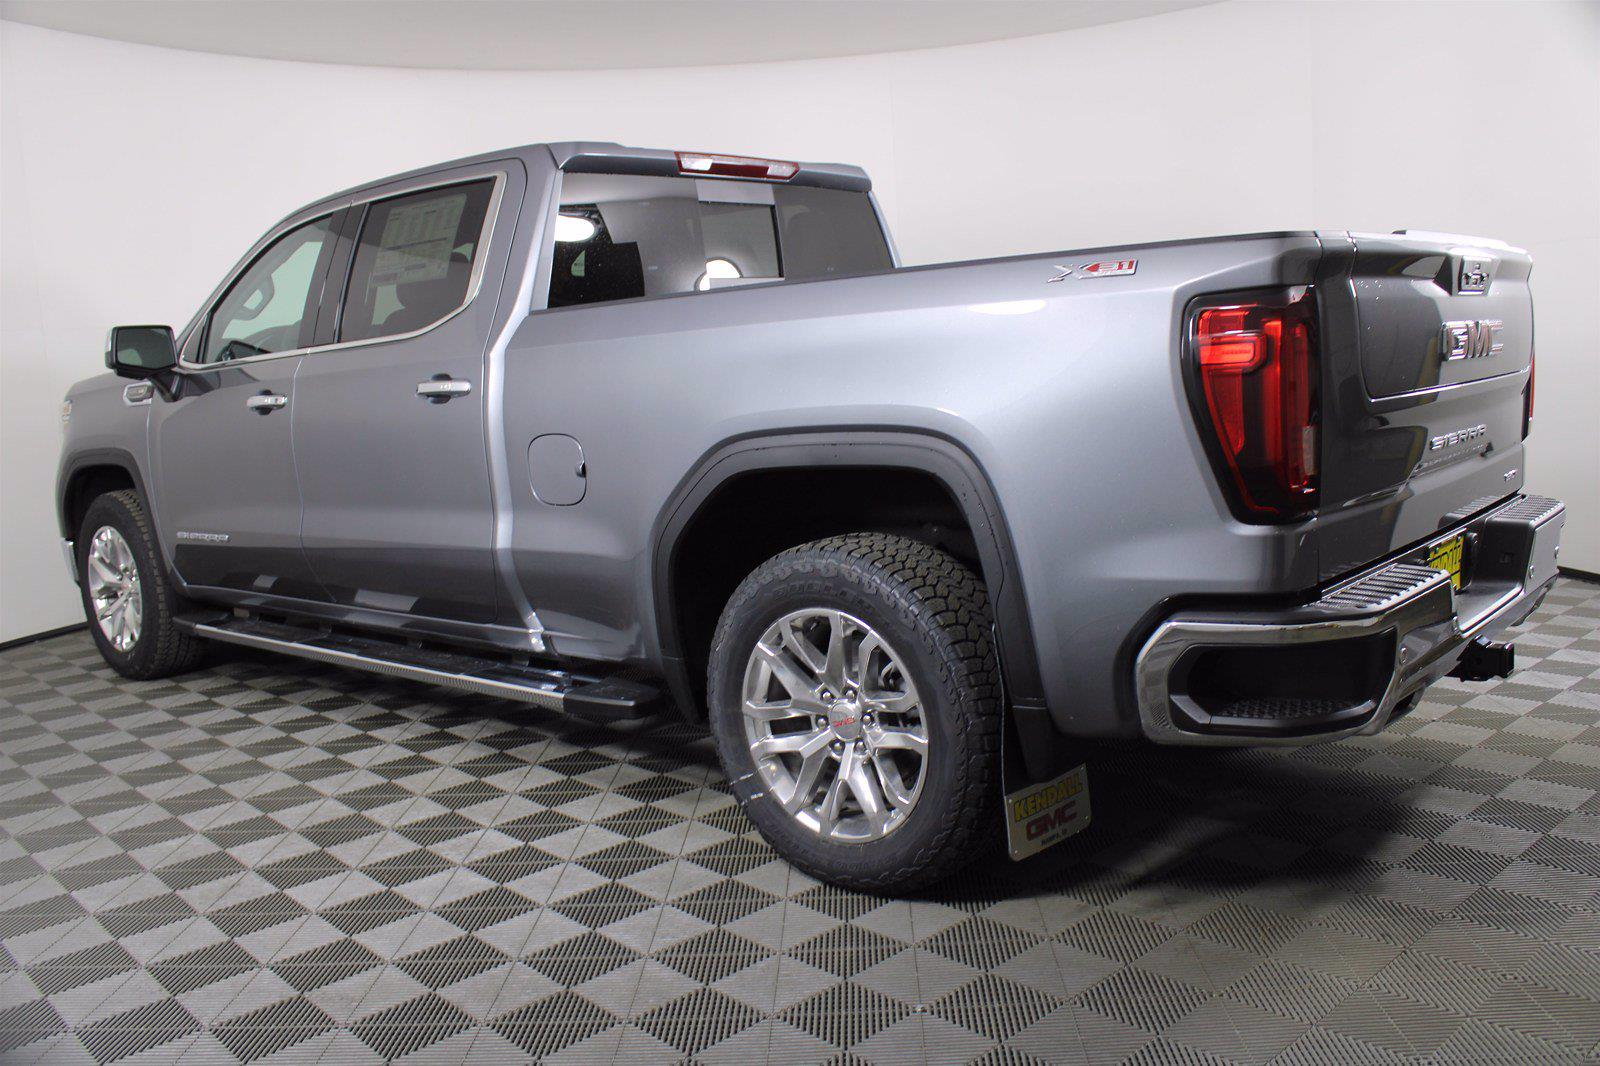 2021 GMC Sierra 1500 Crew Cab 4x4, Pickup #D410592 - photo 2